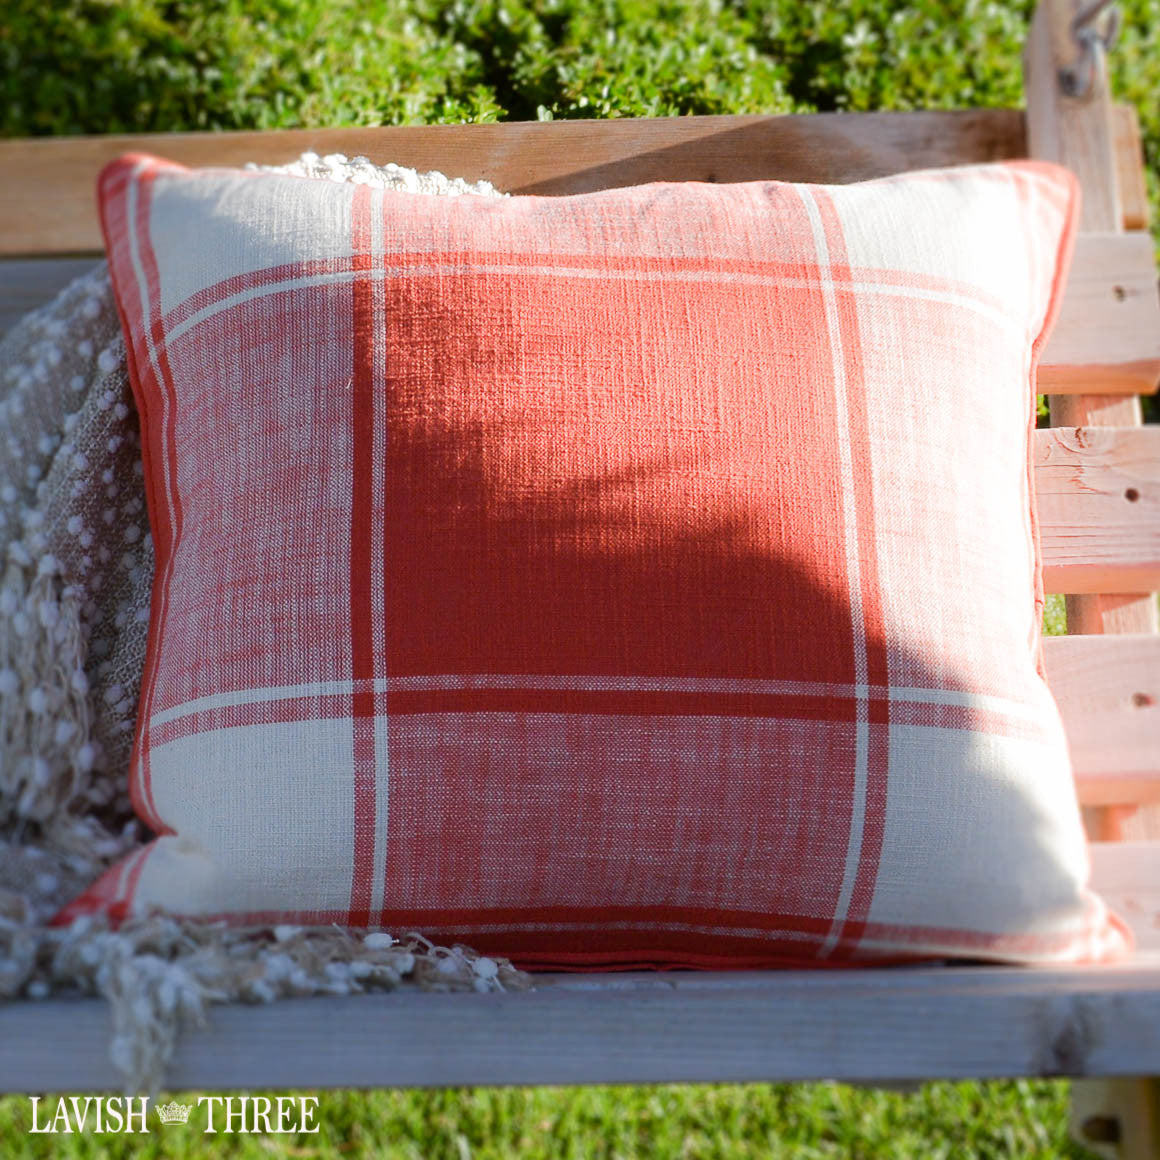 Large window pane plaid throw accent pillow in ivory and coral Lavish three 3